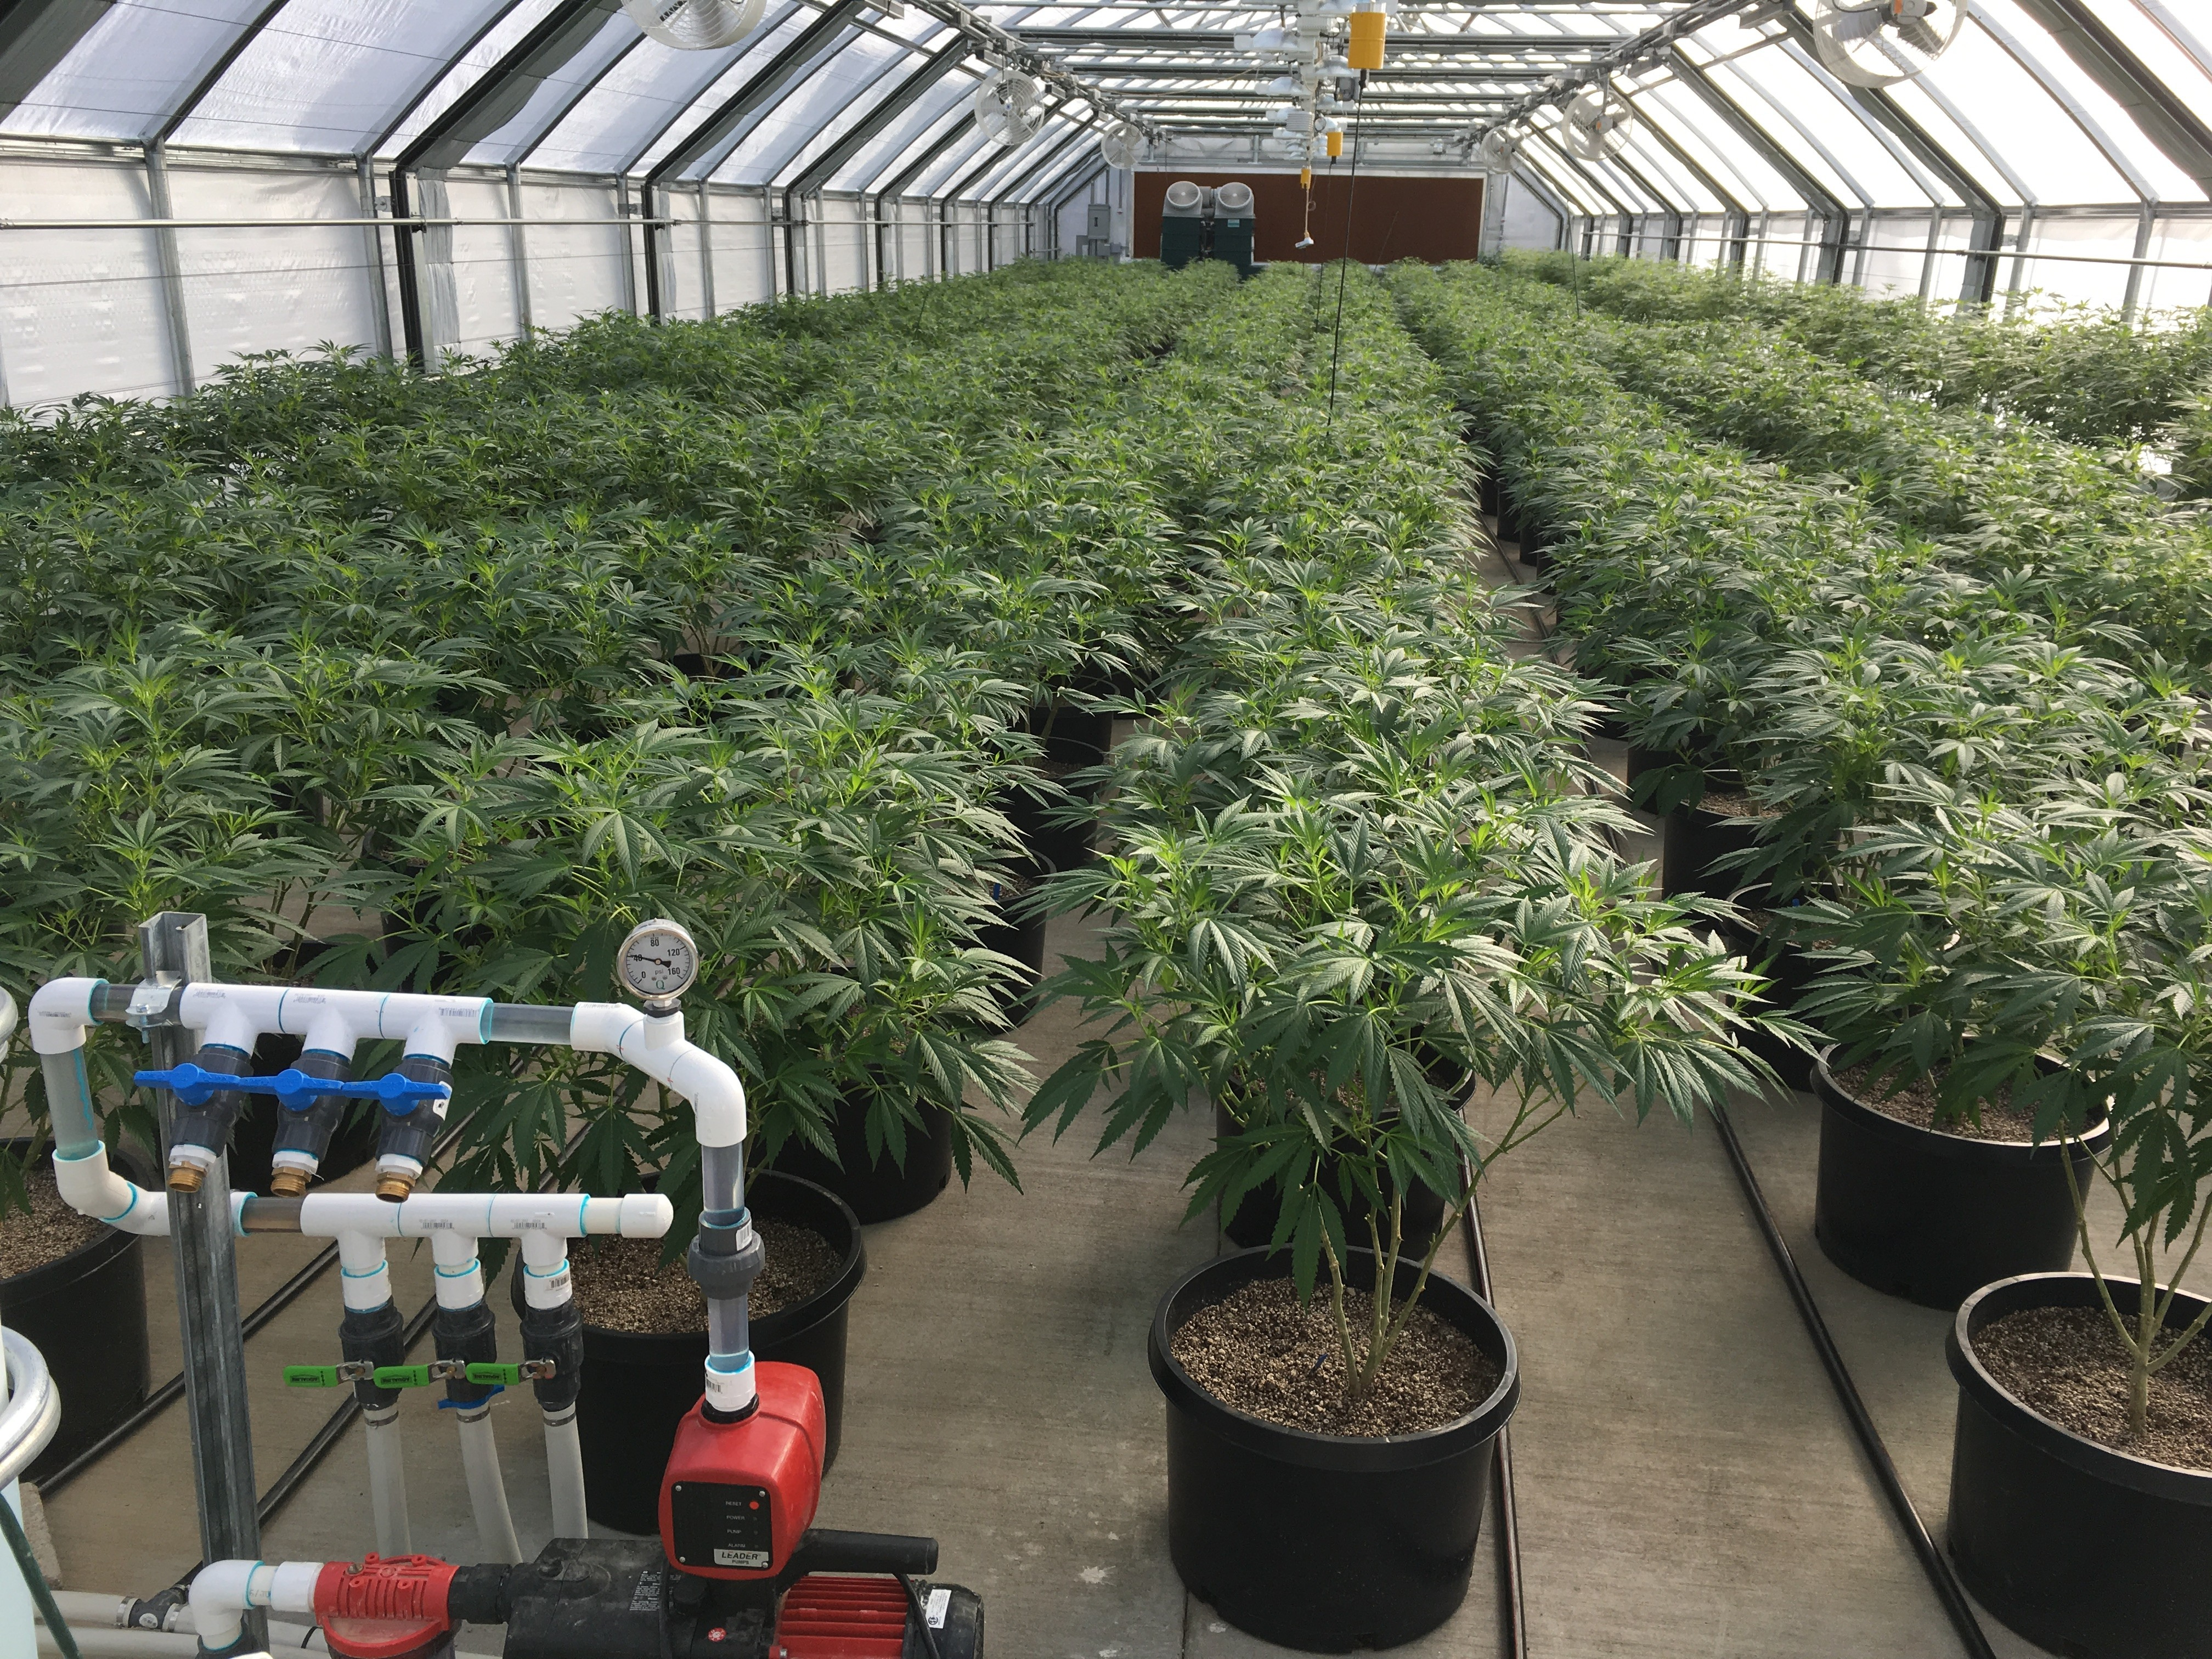 Legal cannabis greenhouse potted plants